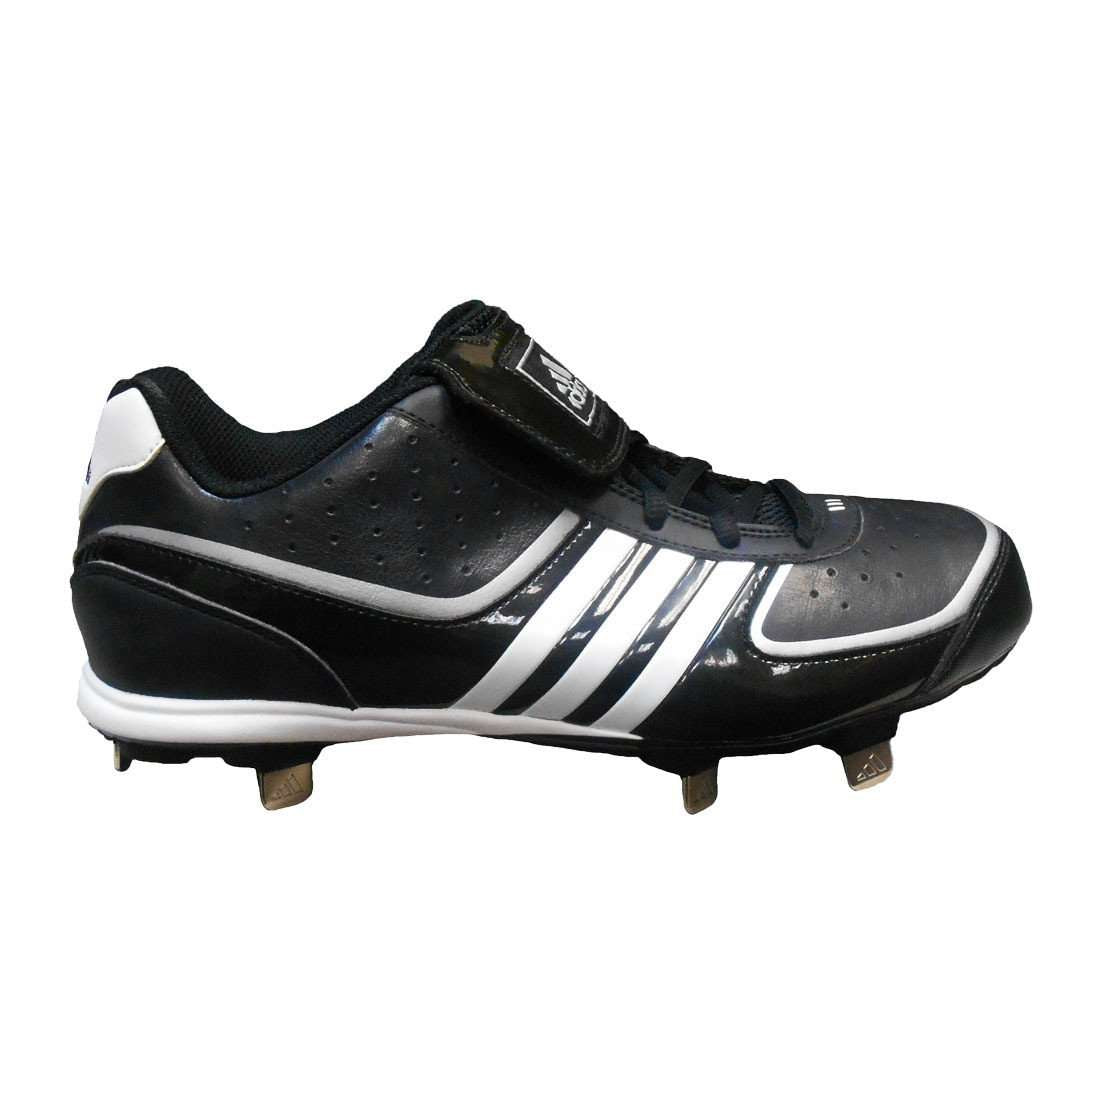 dada3a2d9 adidas Fastpitch 4 Women s Metal Softball Cleats – League Outfitters